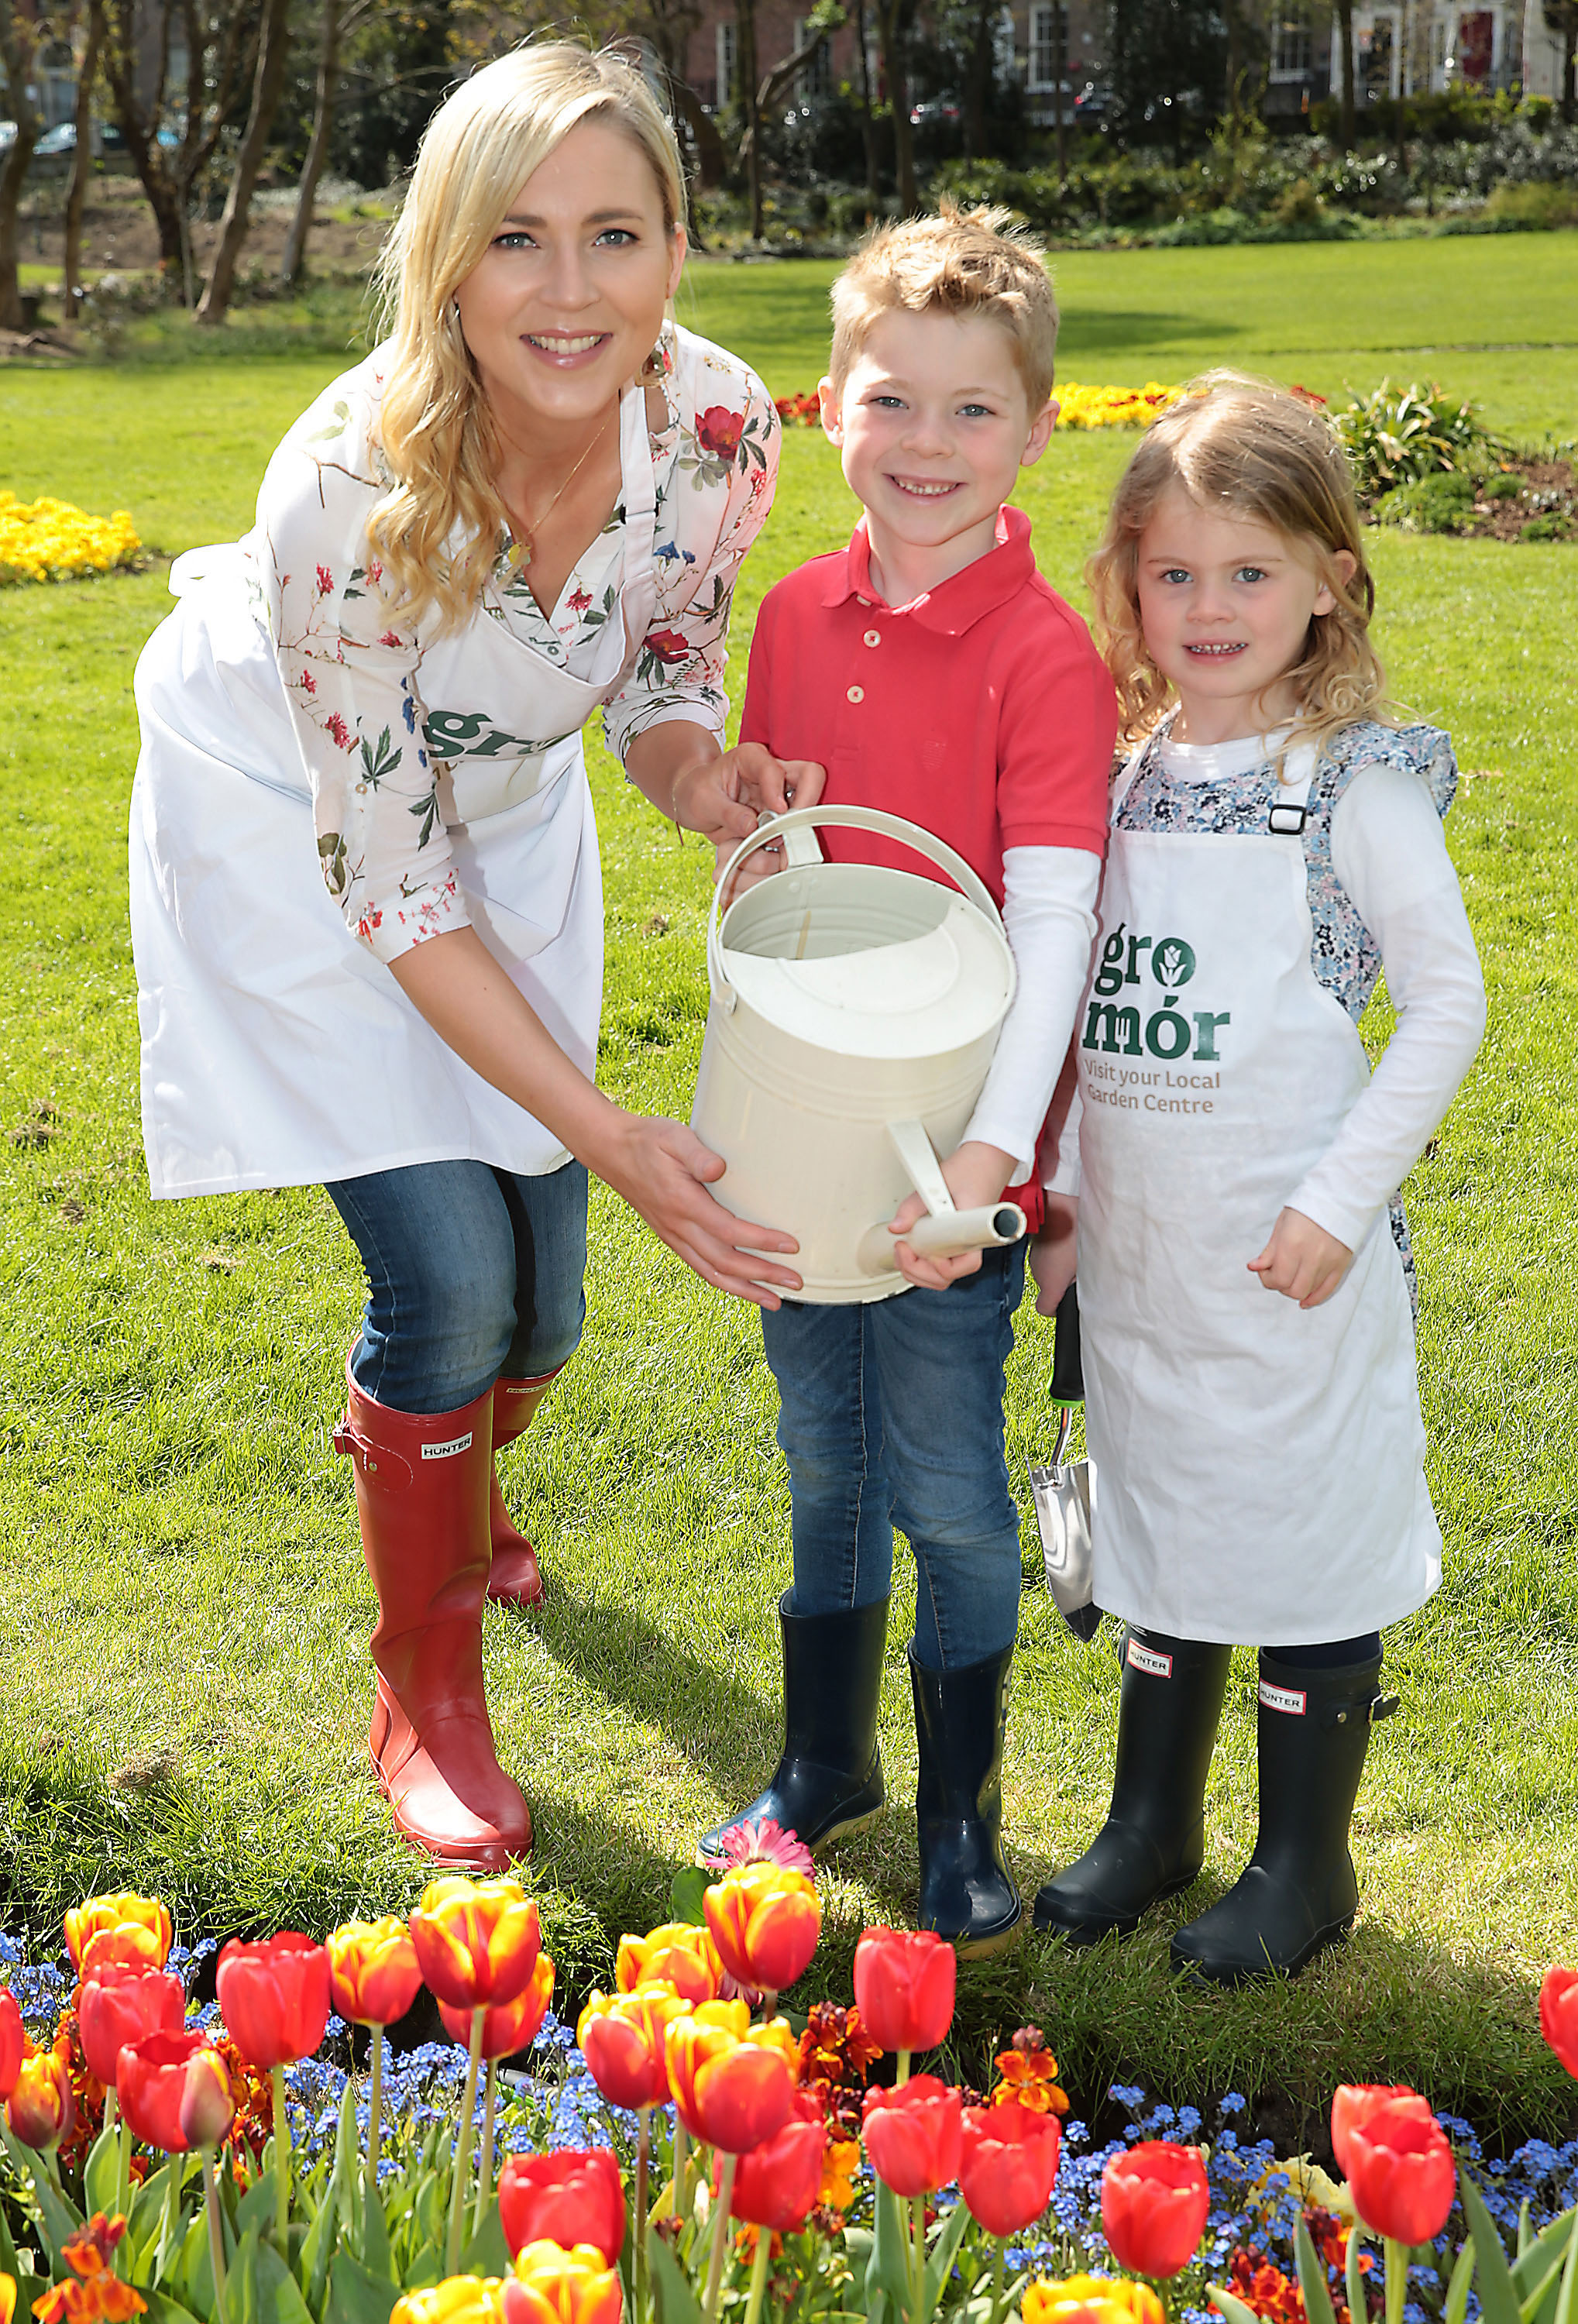 Sarah McGovern with her son Jude Vaughan(6 years old) and daughter Robyn Vaughan (4 years old ) pictured  as they launched  GroMór 2018 in Merrion Square, Dublin  ahead of  Lá Bealtaine 1st May which officially marks the start of summer.  GroMór 2018, a nationwide campaign is aimed at encouraging everyone to visit their local garden centres and get growing www.gromor.ie Pic Brian McEvoy No Repro fee for one use   GroMór is an initiative by Retail Excellence Ireland in association with Bord Bia and nursery growers, promoting its 75 local garden centres and nurseries located across the country. These centres are available to offer free expert advice to people in all age groups, from novices and new homeowners to experienced gardeners.  Find out how to best grow plants, herbs, flowers, fruits, vegetables, whether it be on a windowsill, balcony or in a garden. Also discover the health benefits associated with gardening or how to introduce the wonder of nature to children www.gromor.ie.